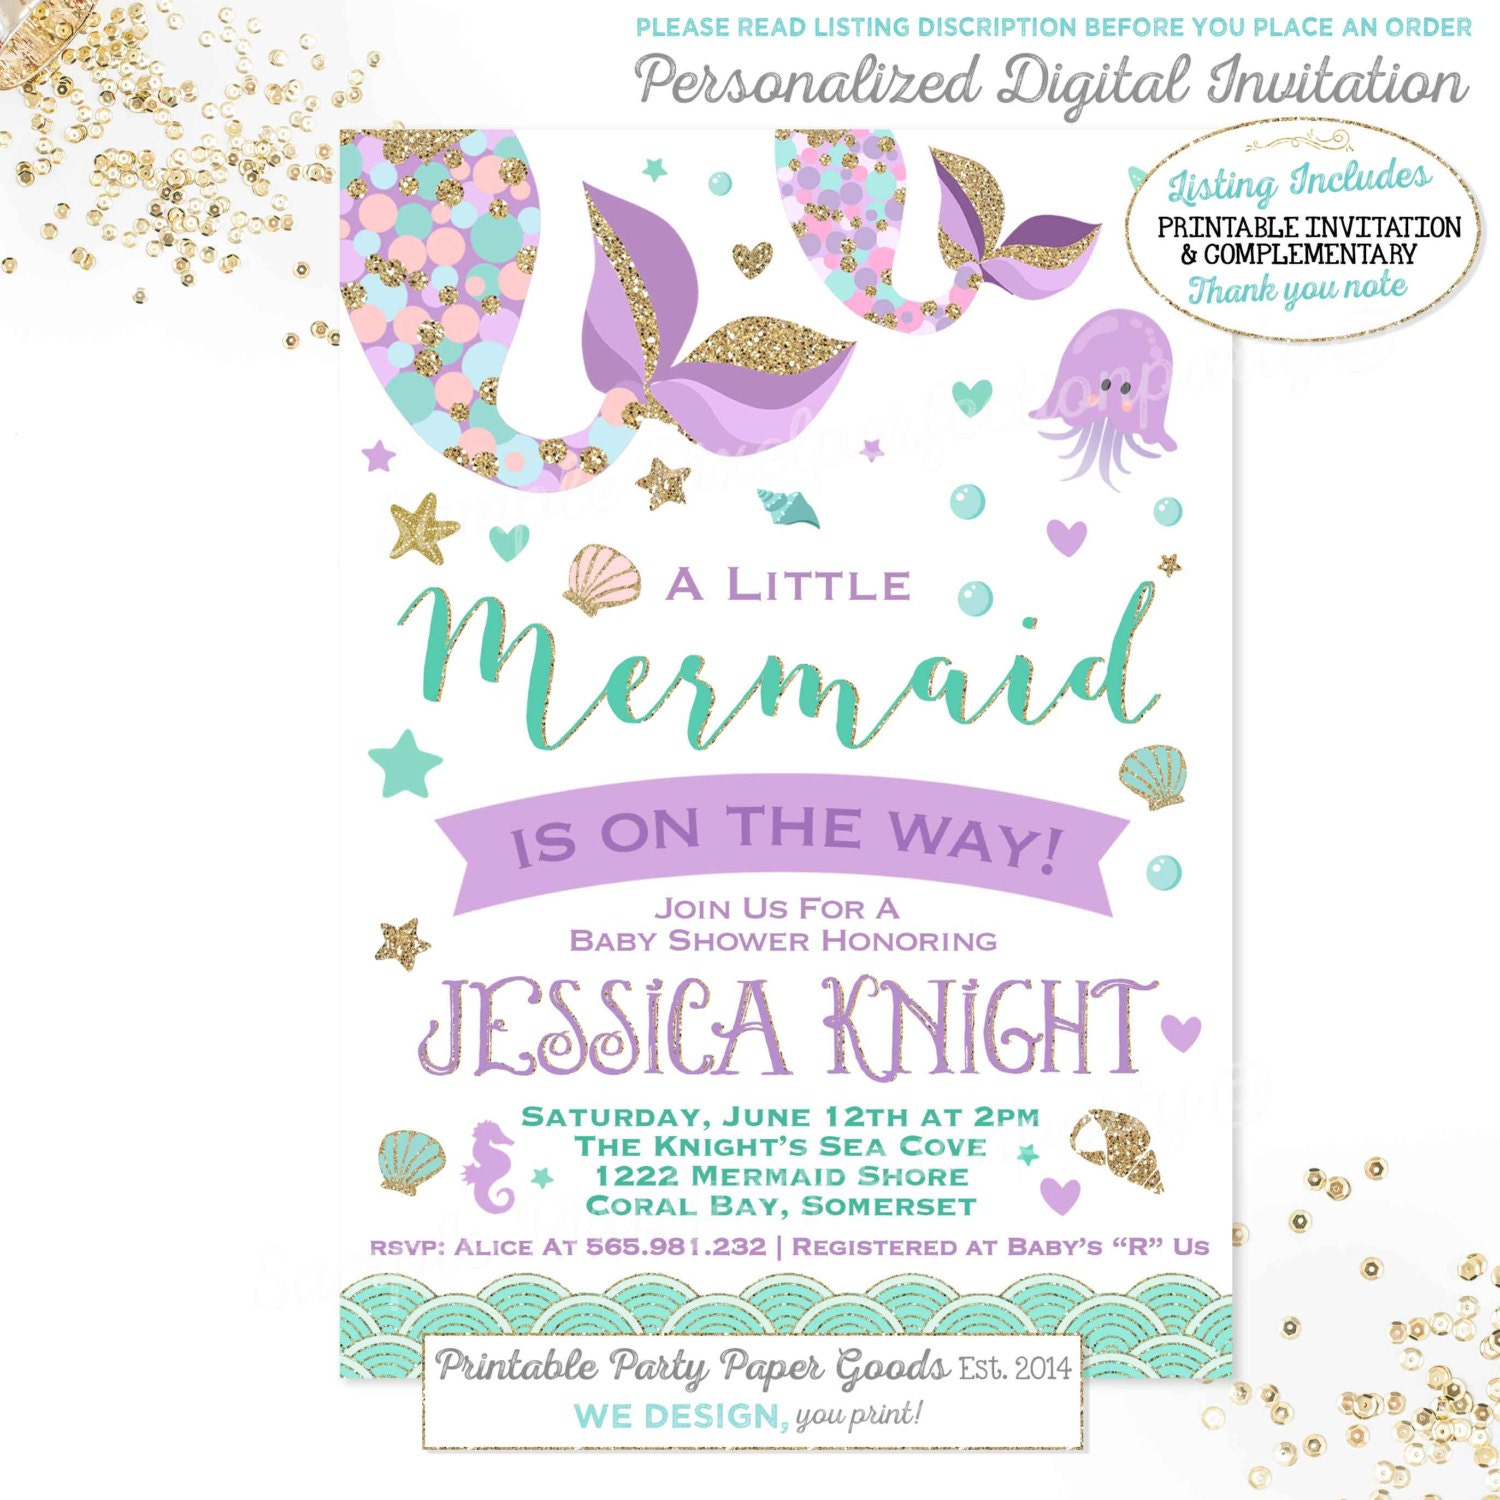 Whimsical Invitations is awesome invitation template